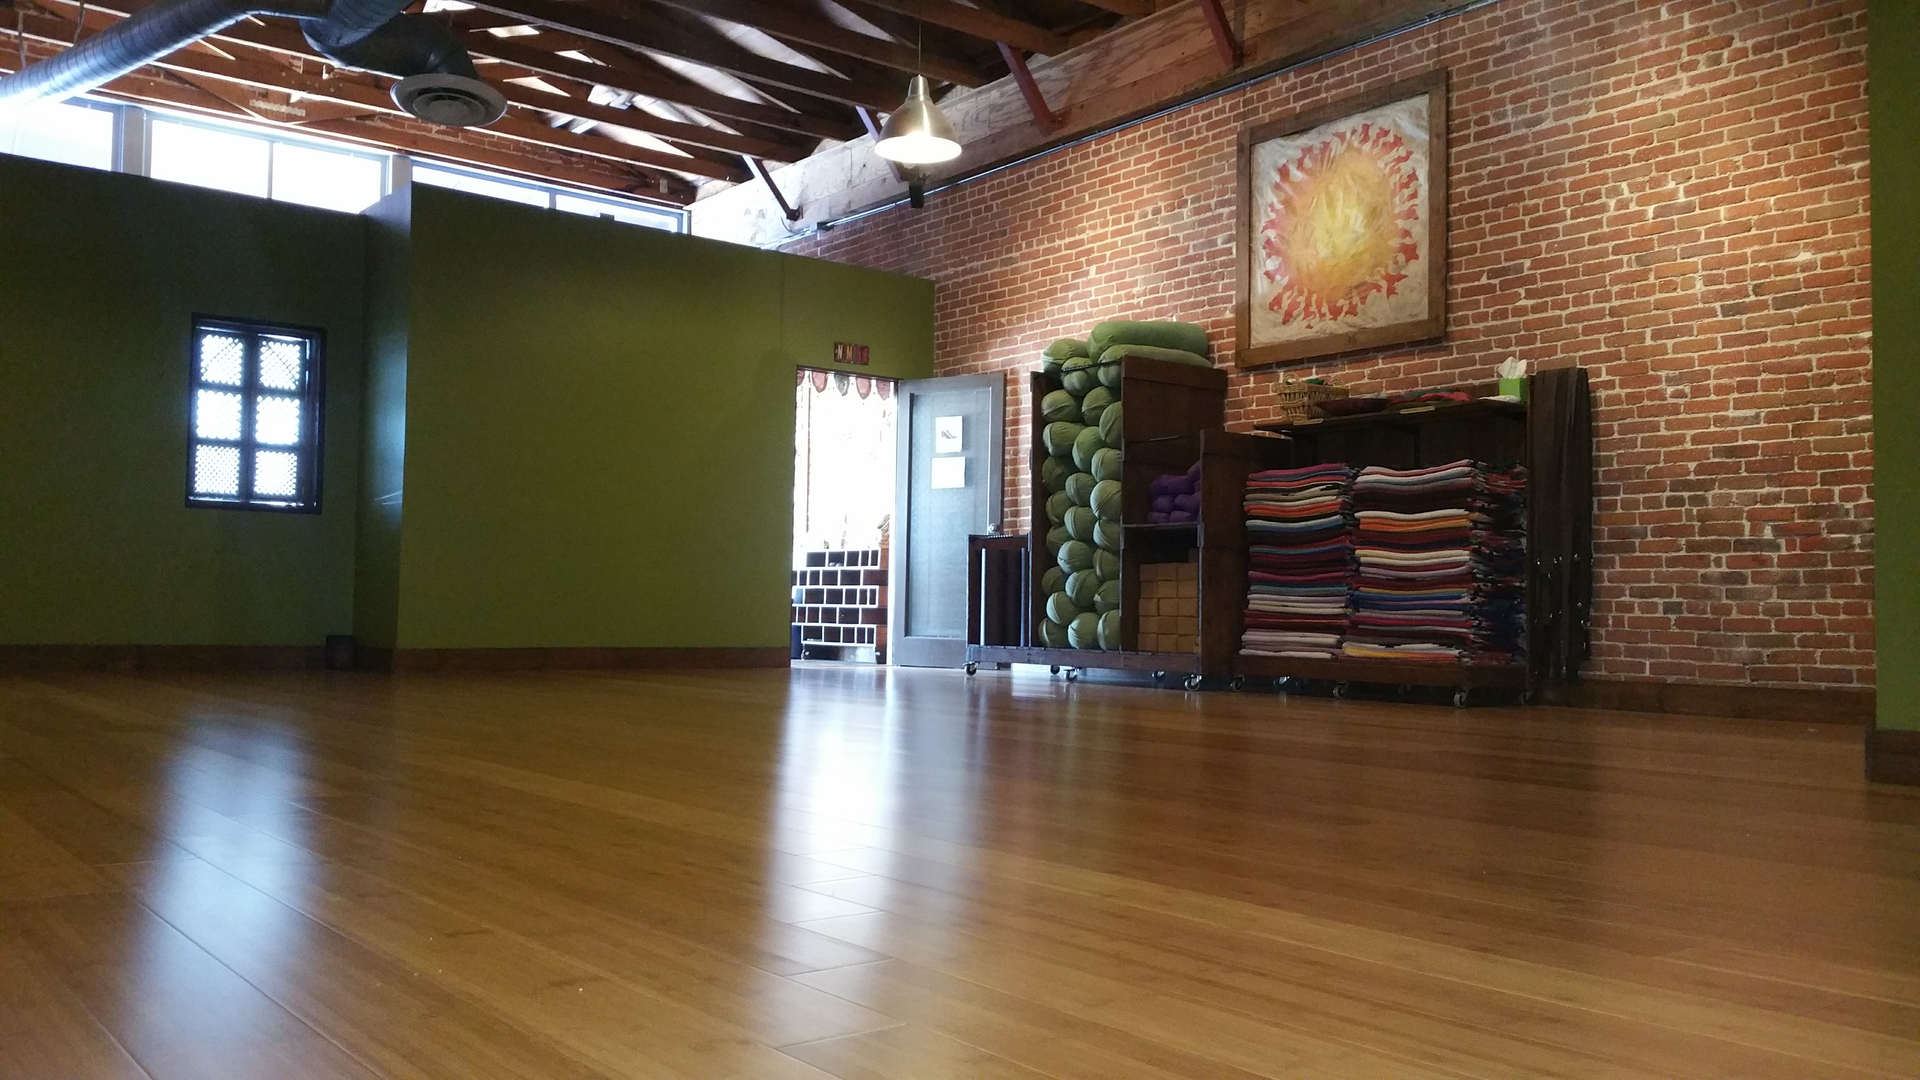 Sunspark Yoga Yoga Classes Orange California